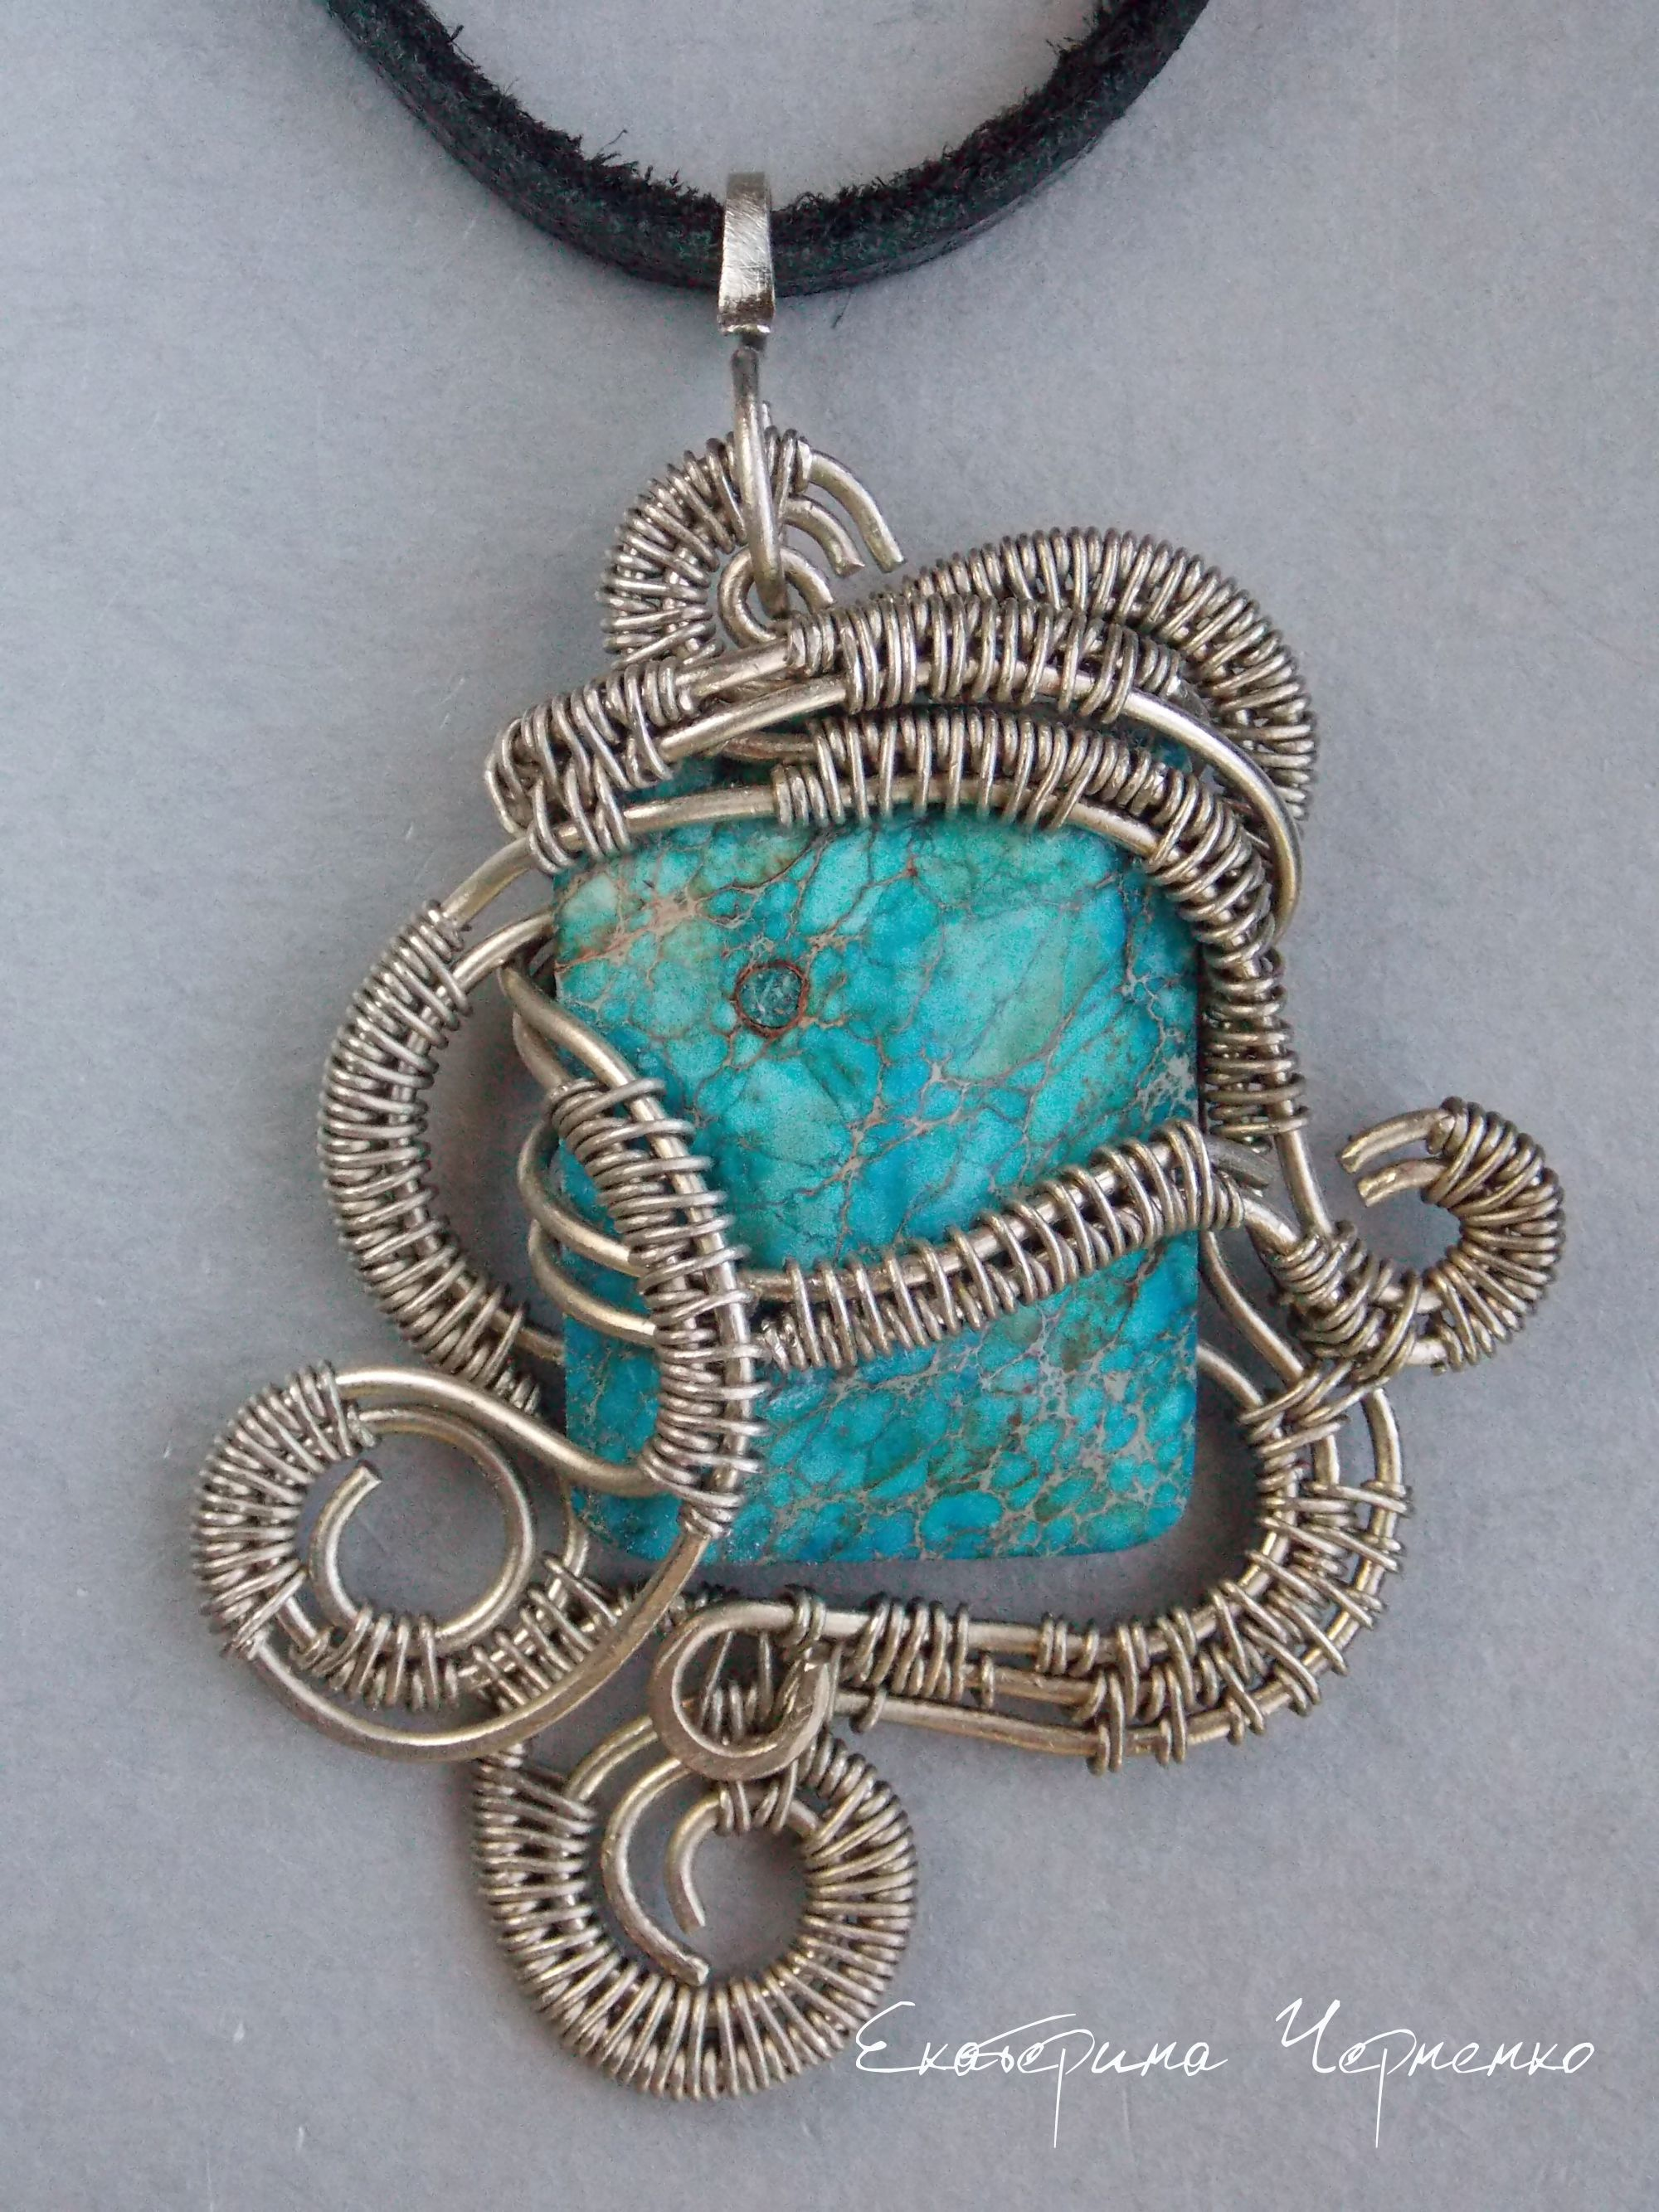 Stone - variscite, metal - nickel silver and melchior